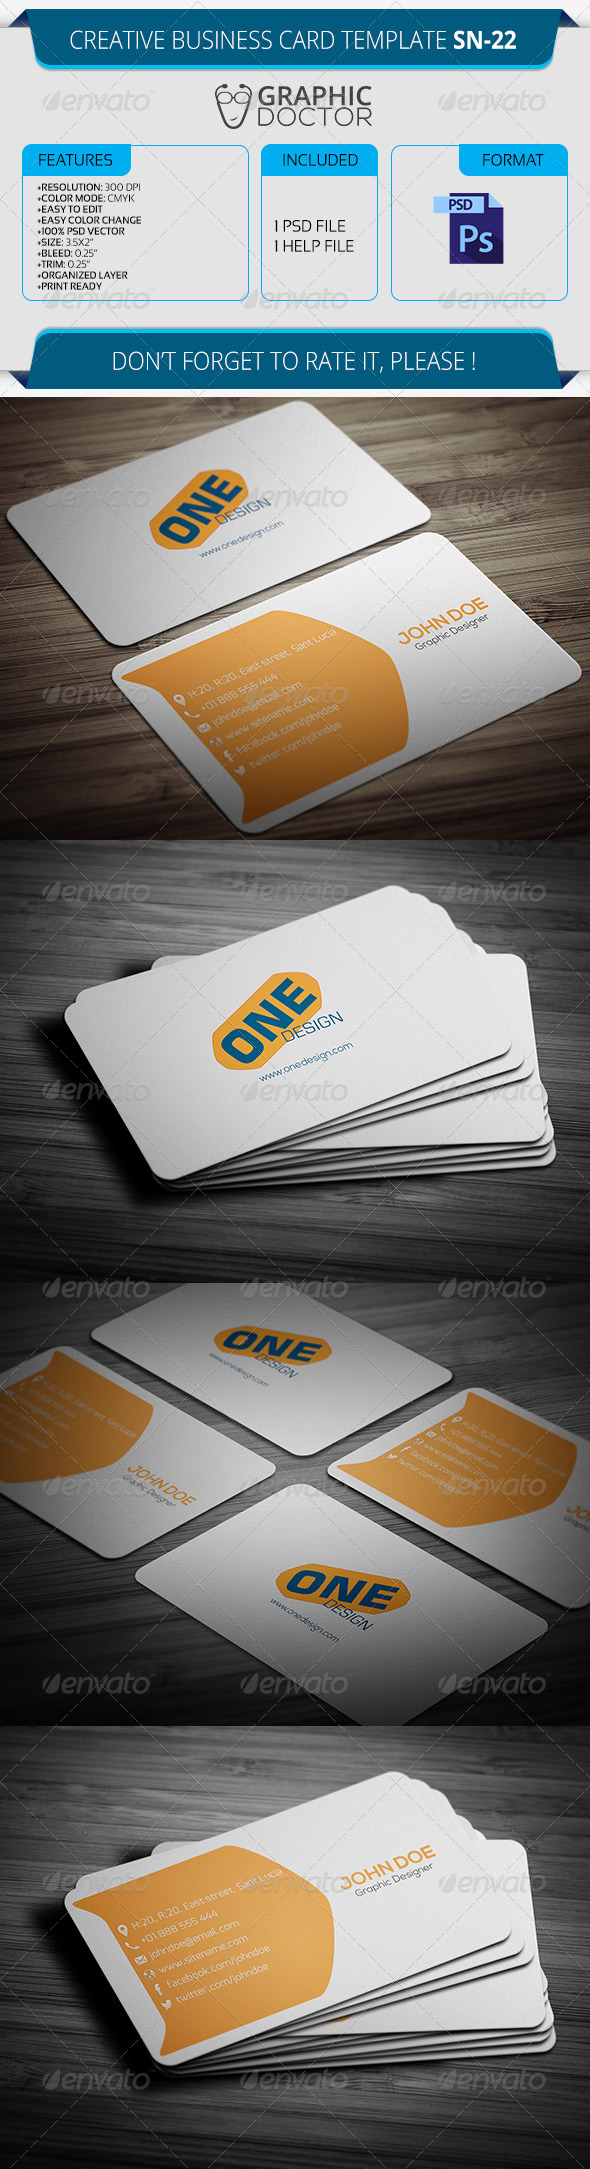 Creative Business Card Template SN-22 - Creative Business Cards